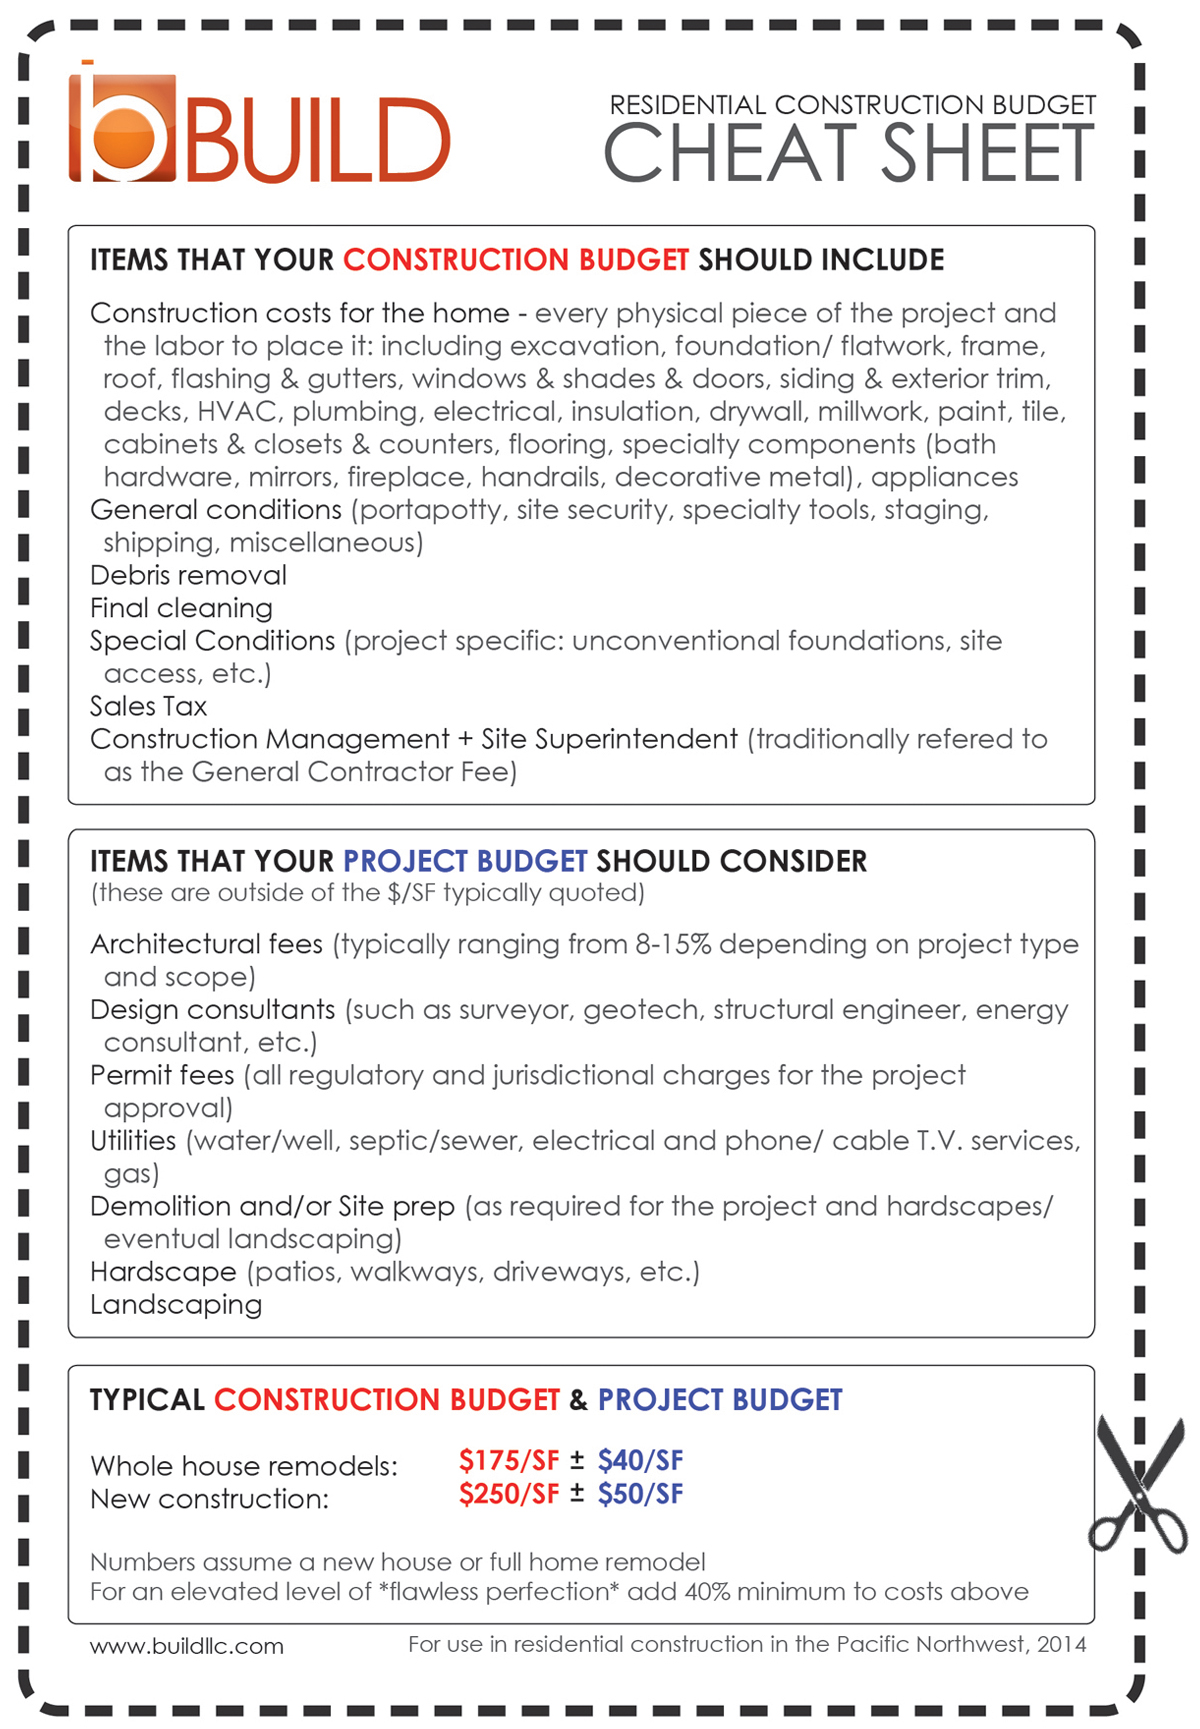 Construction budget cheat sheet custom home magazine for How to build a custom home on a budget